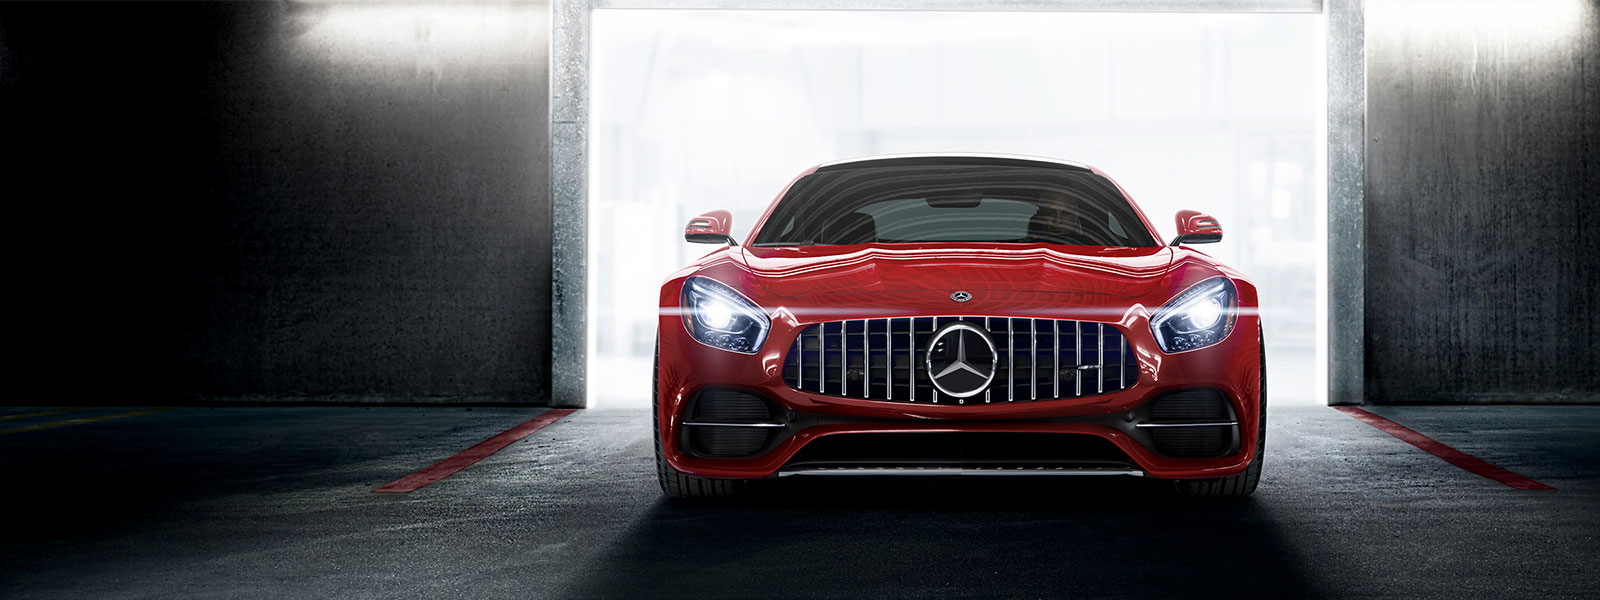 Mercedes Amg Mercedes Amg Gt High Performance Sports Car Mercedes Benz